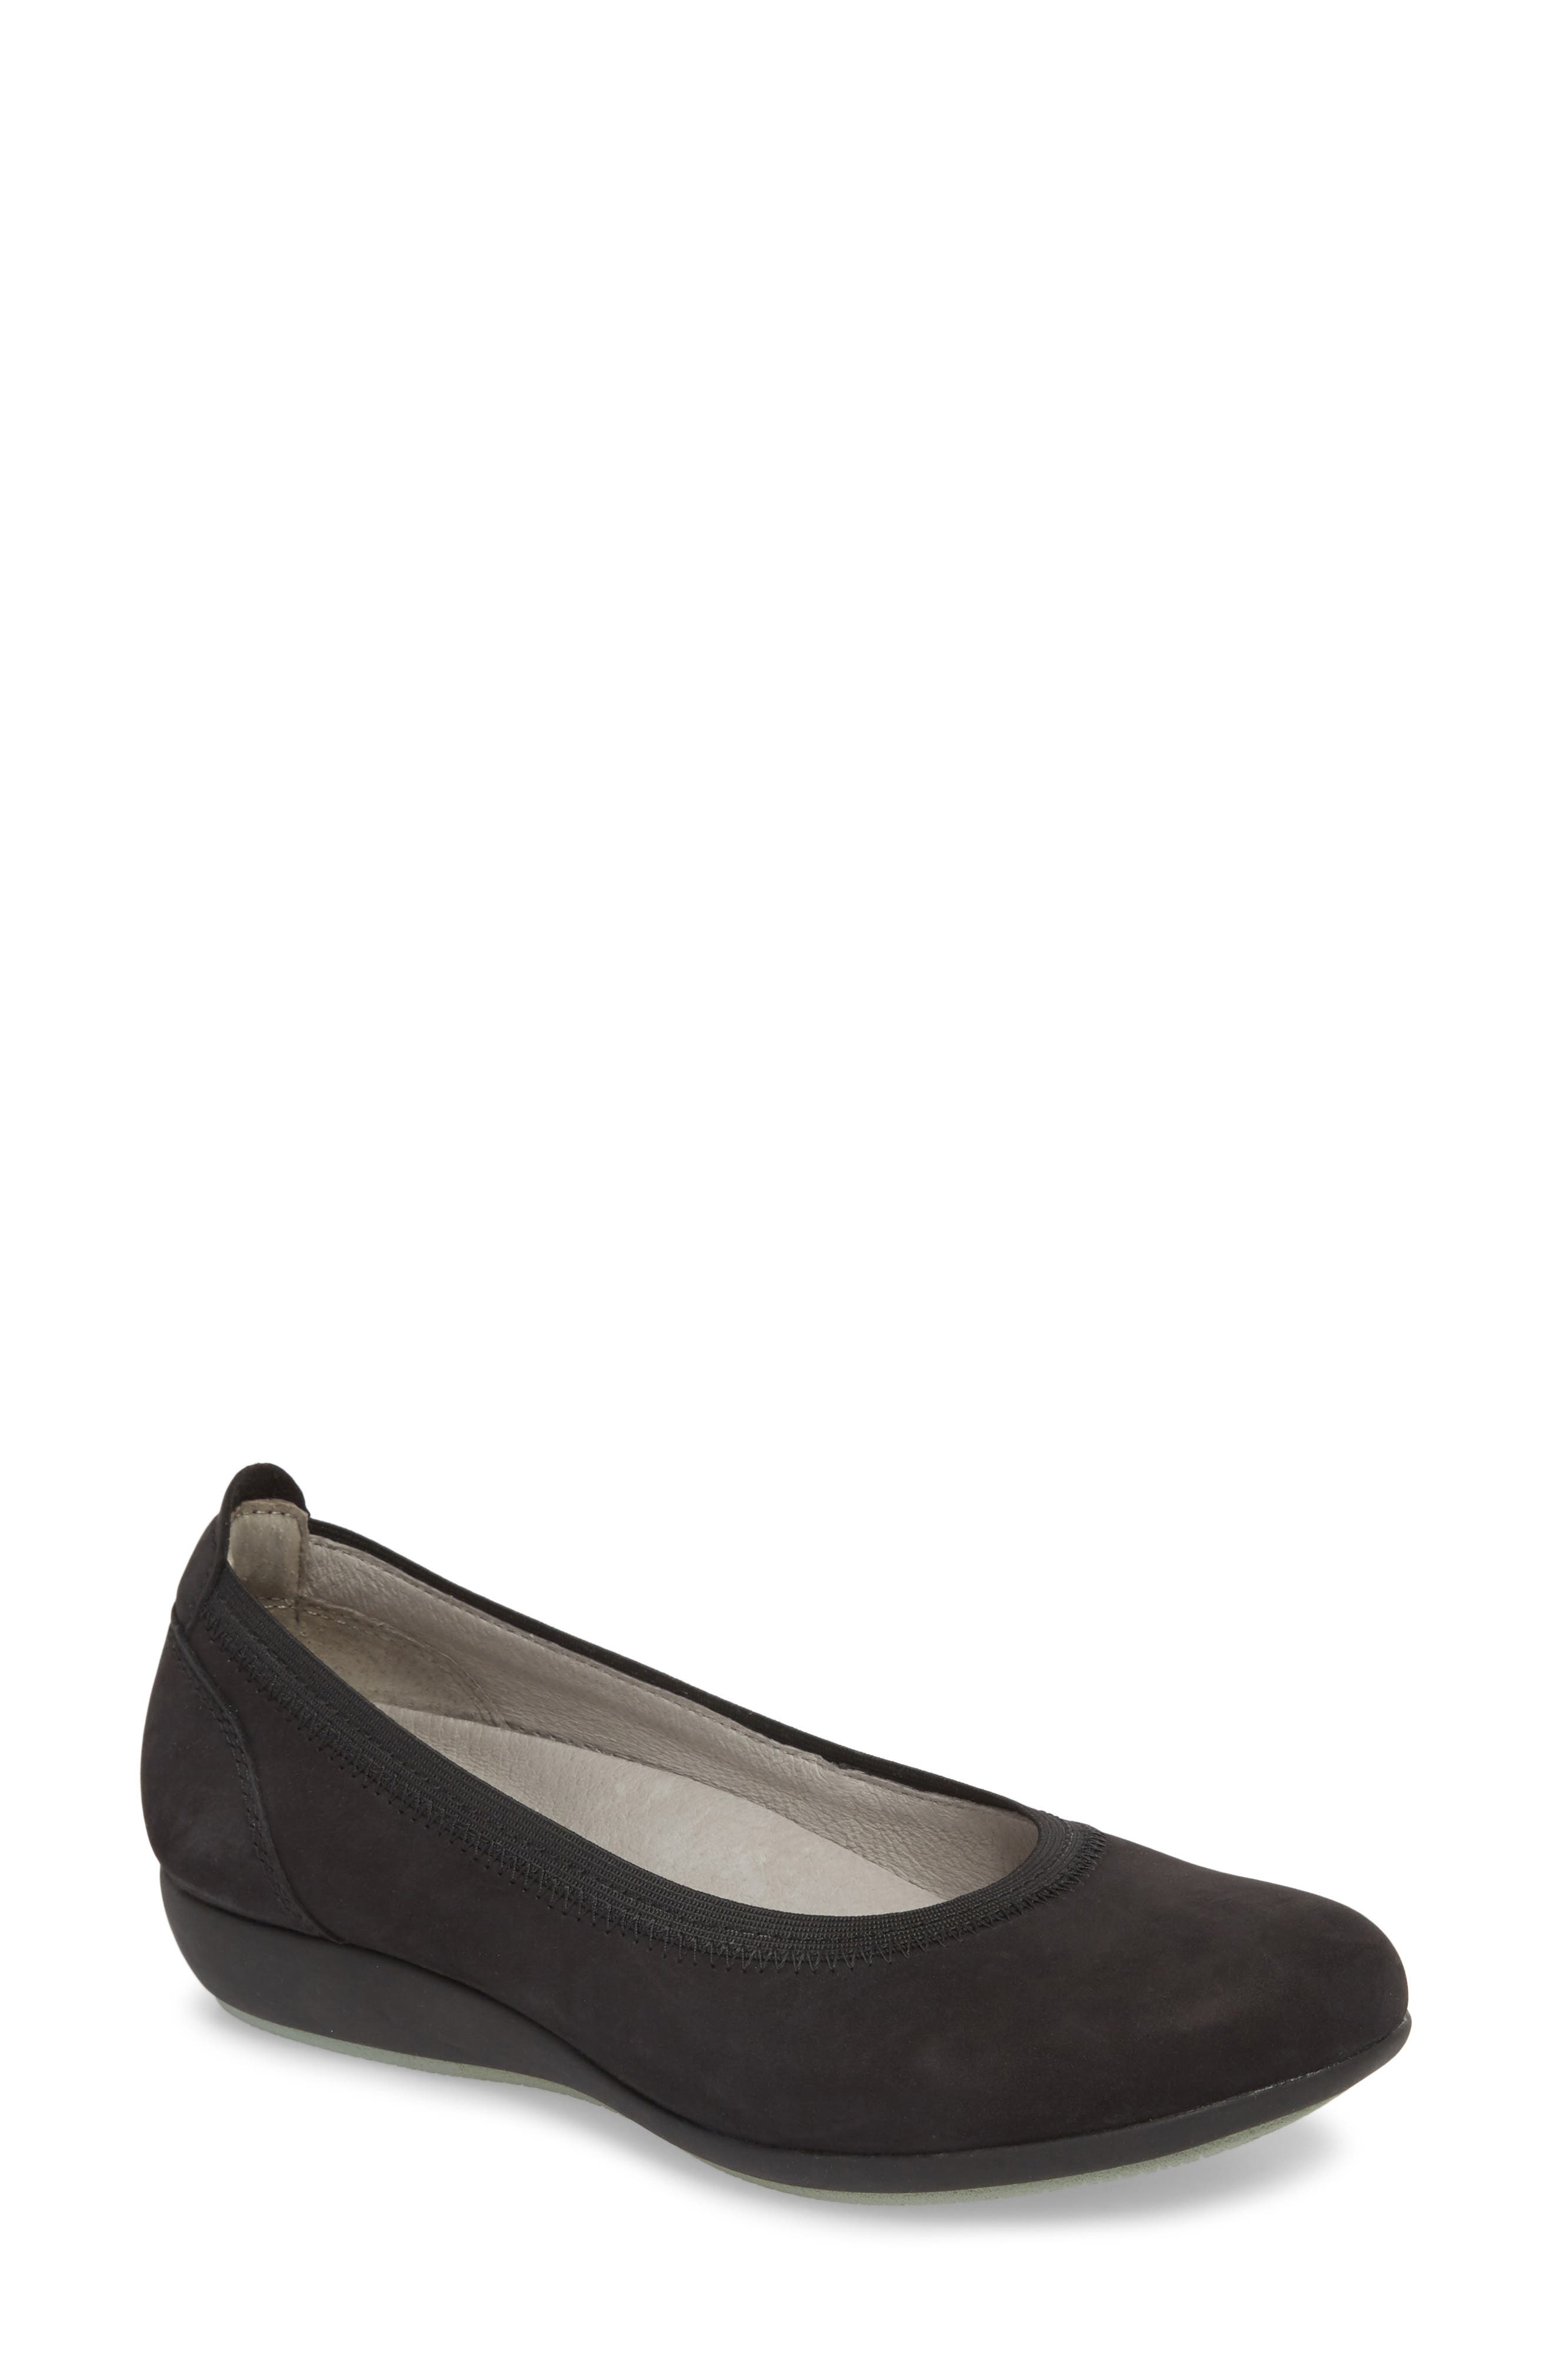 Kristen Ballet Flat,                         Main,                         color, BLACK MILLED NUBUCK